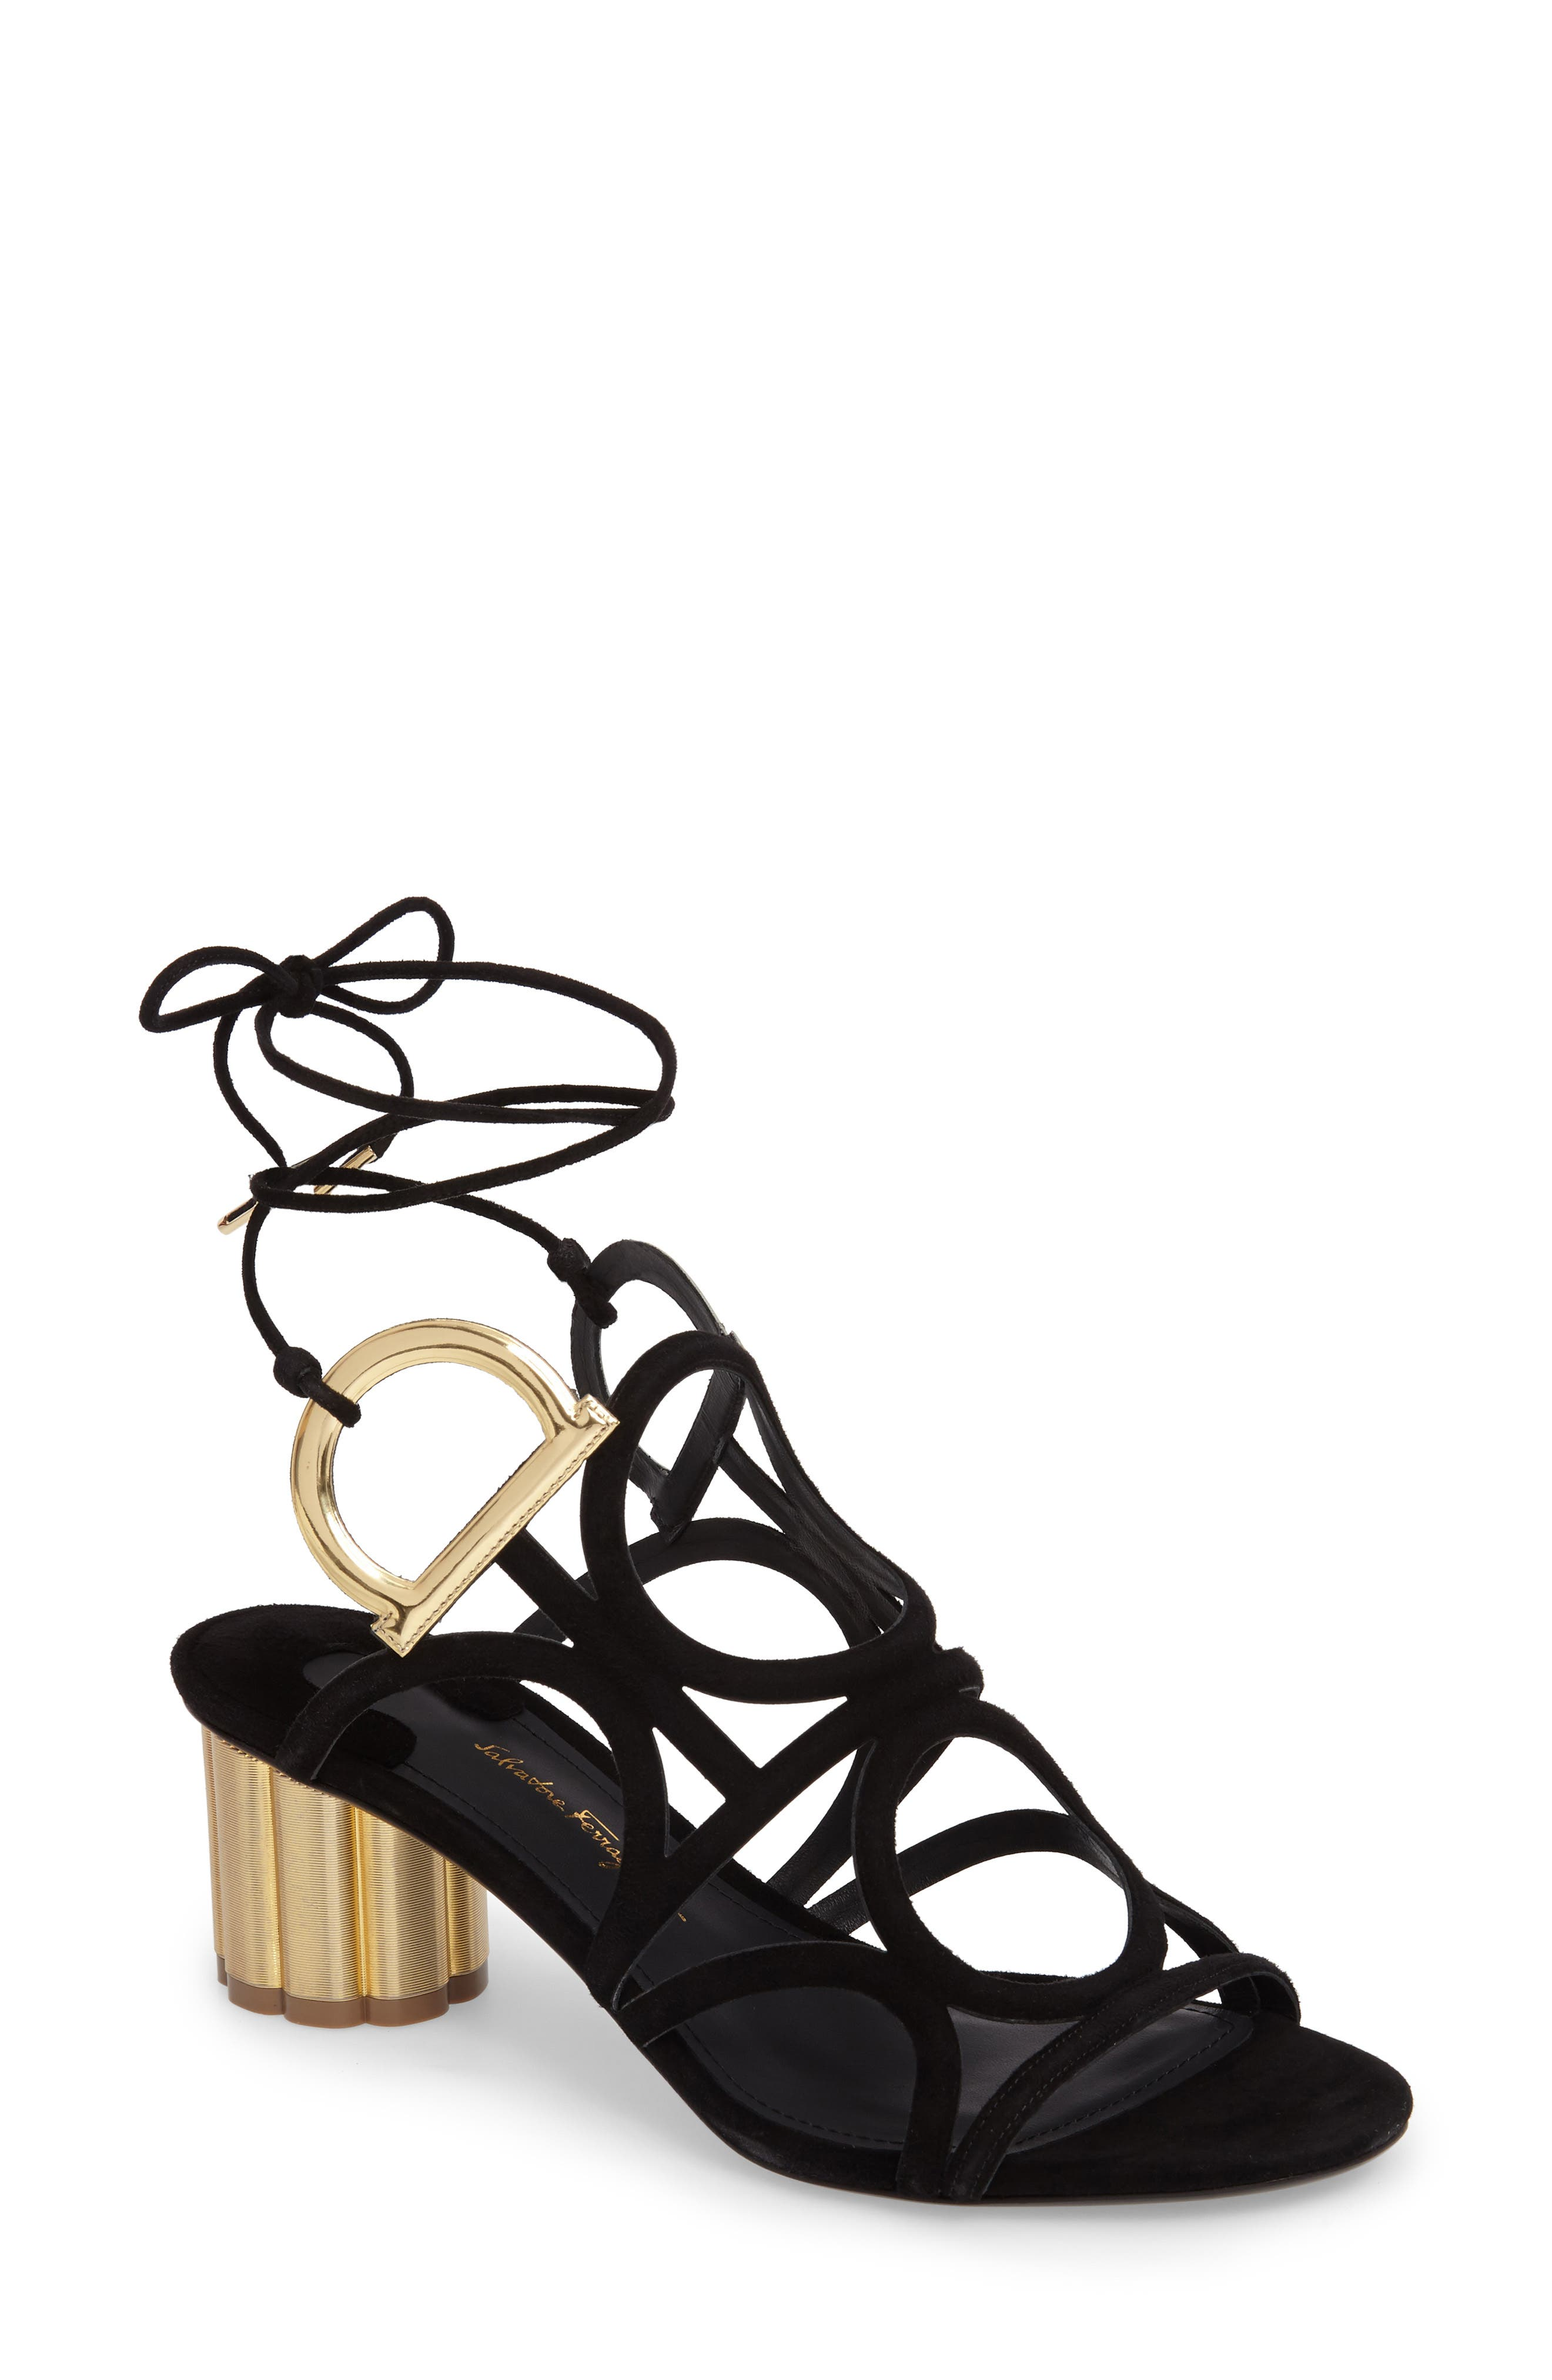 Salvatore Ferragamo Women's Vinci Lace-Up Sandal GLfcjJ